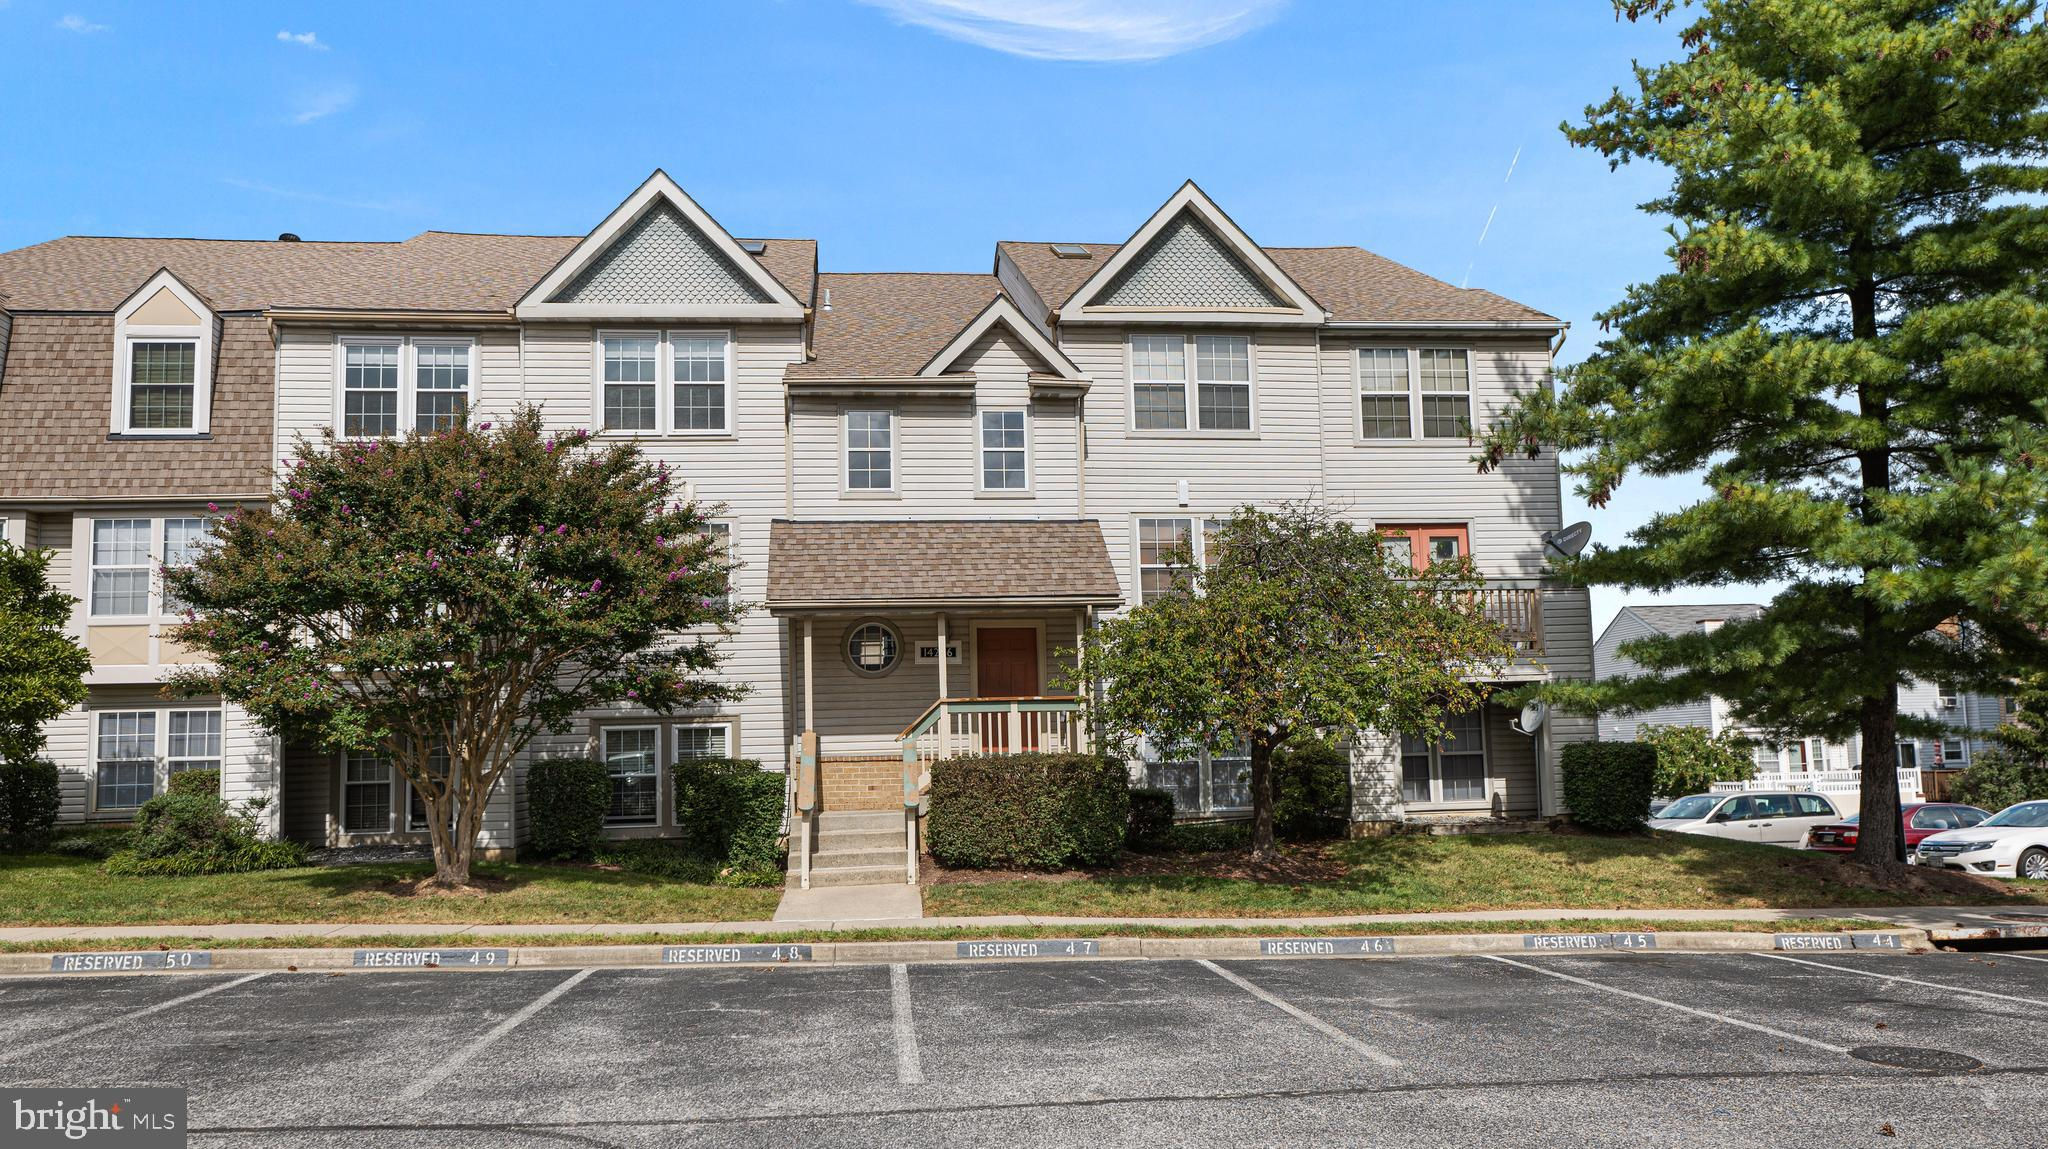 Another Property Sold - 14226 Jib Street #6232, Laurel, MD 20707